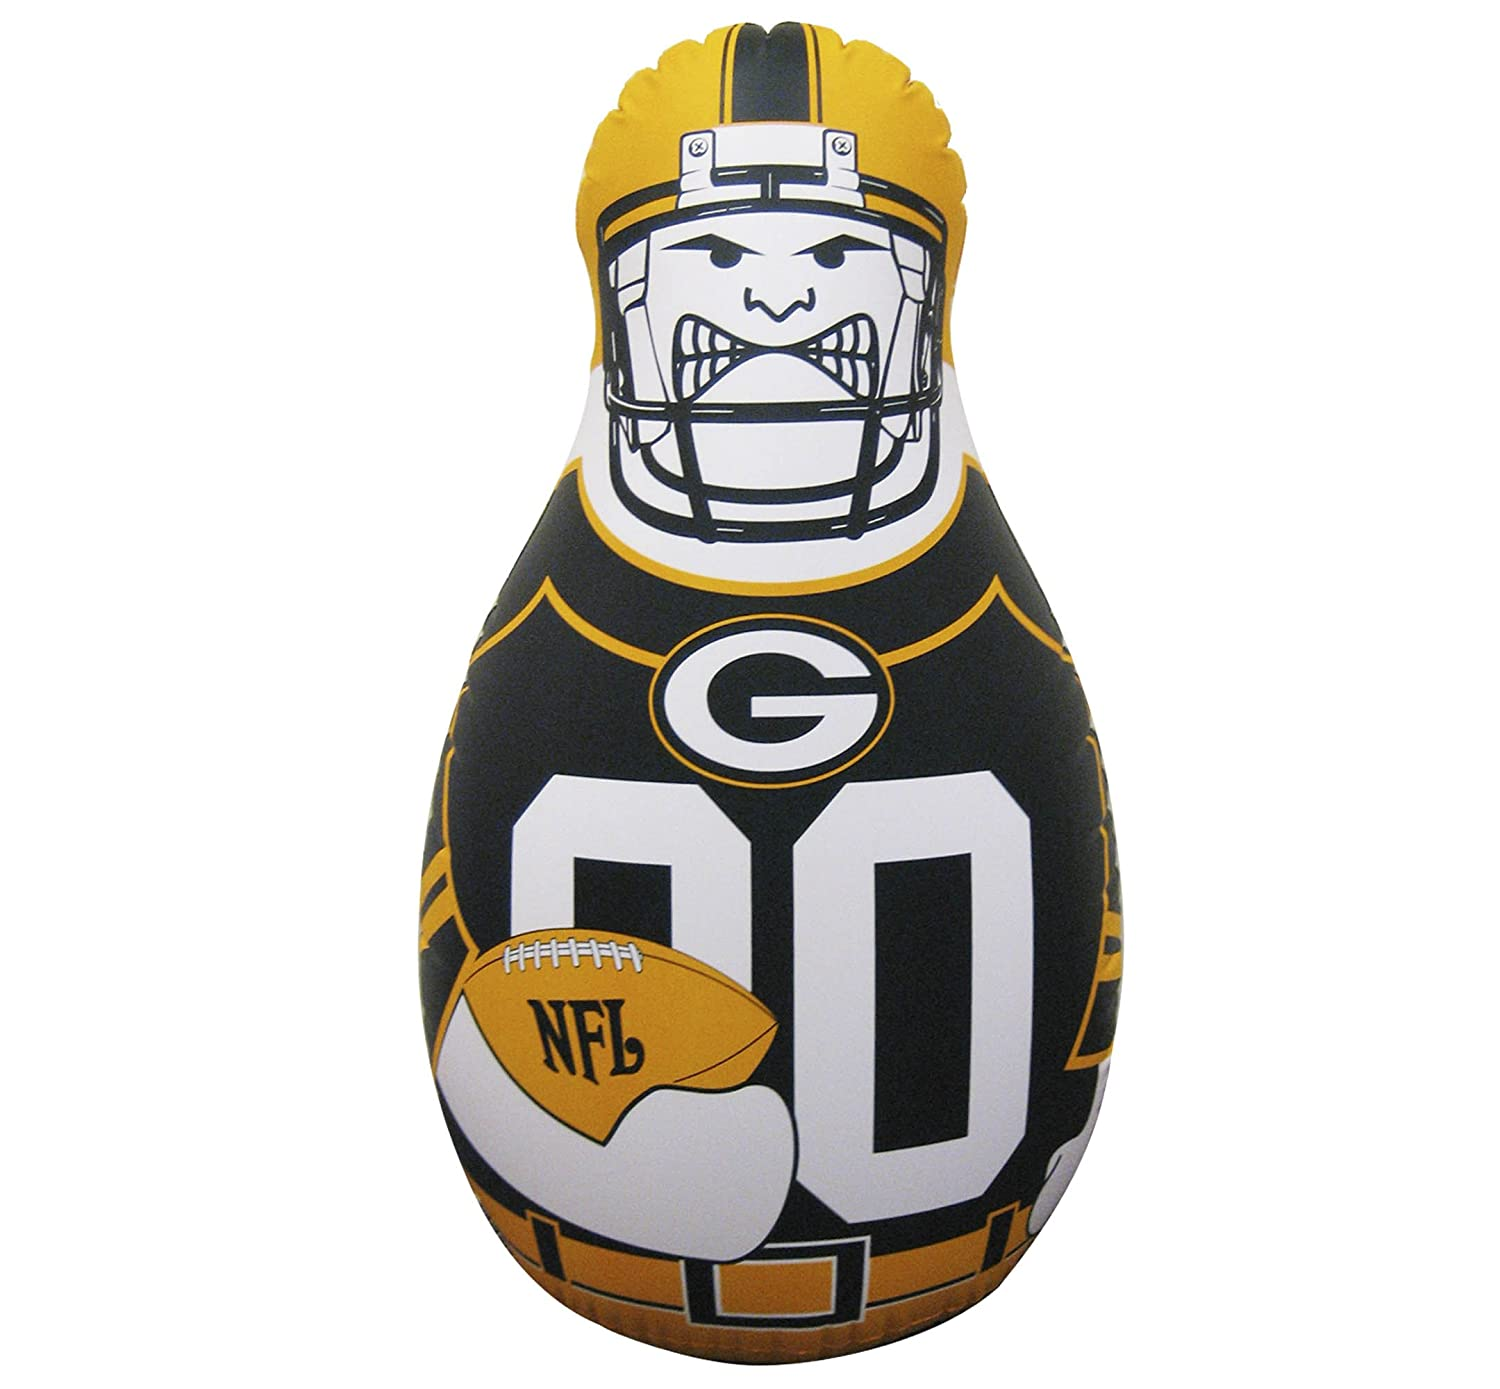 NFL NFL Tackle Buddy Inflatable Tackle Punching Bags Buddy B001H7LP4A, Unique&Basic【UBASIC】:d56d5dcb --- capela.dominiotemporario.com